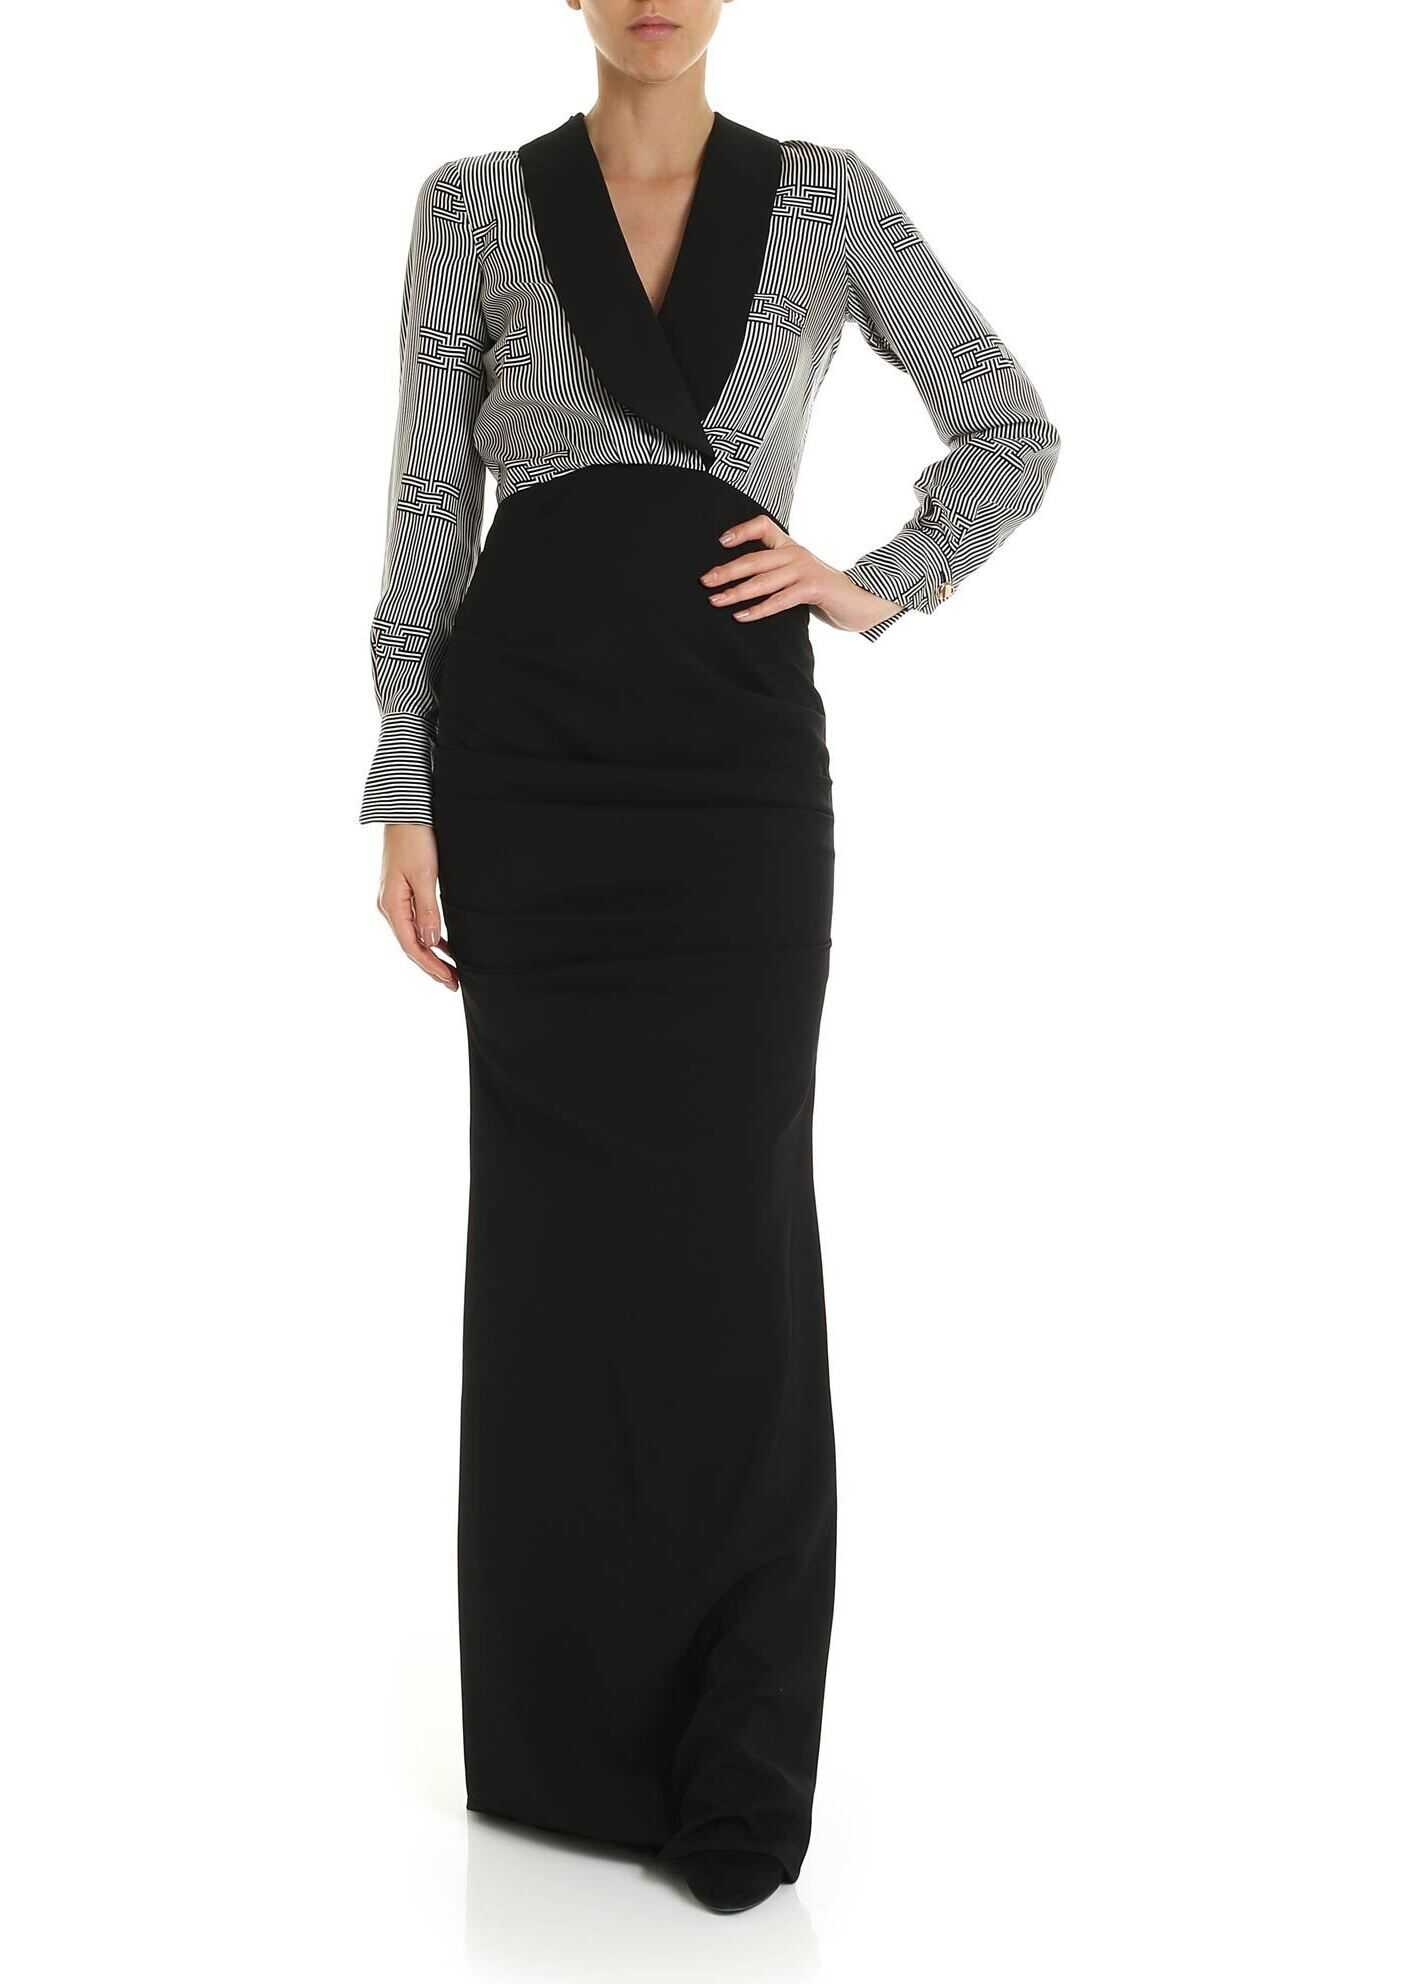 Elisabetta Franchi Long Dress With Rear Bow Black